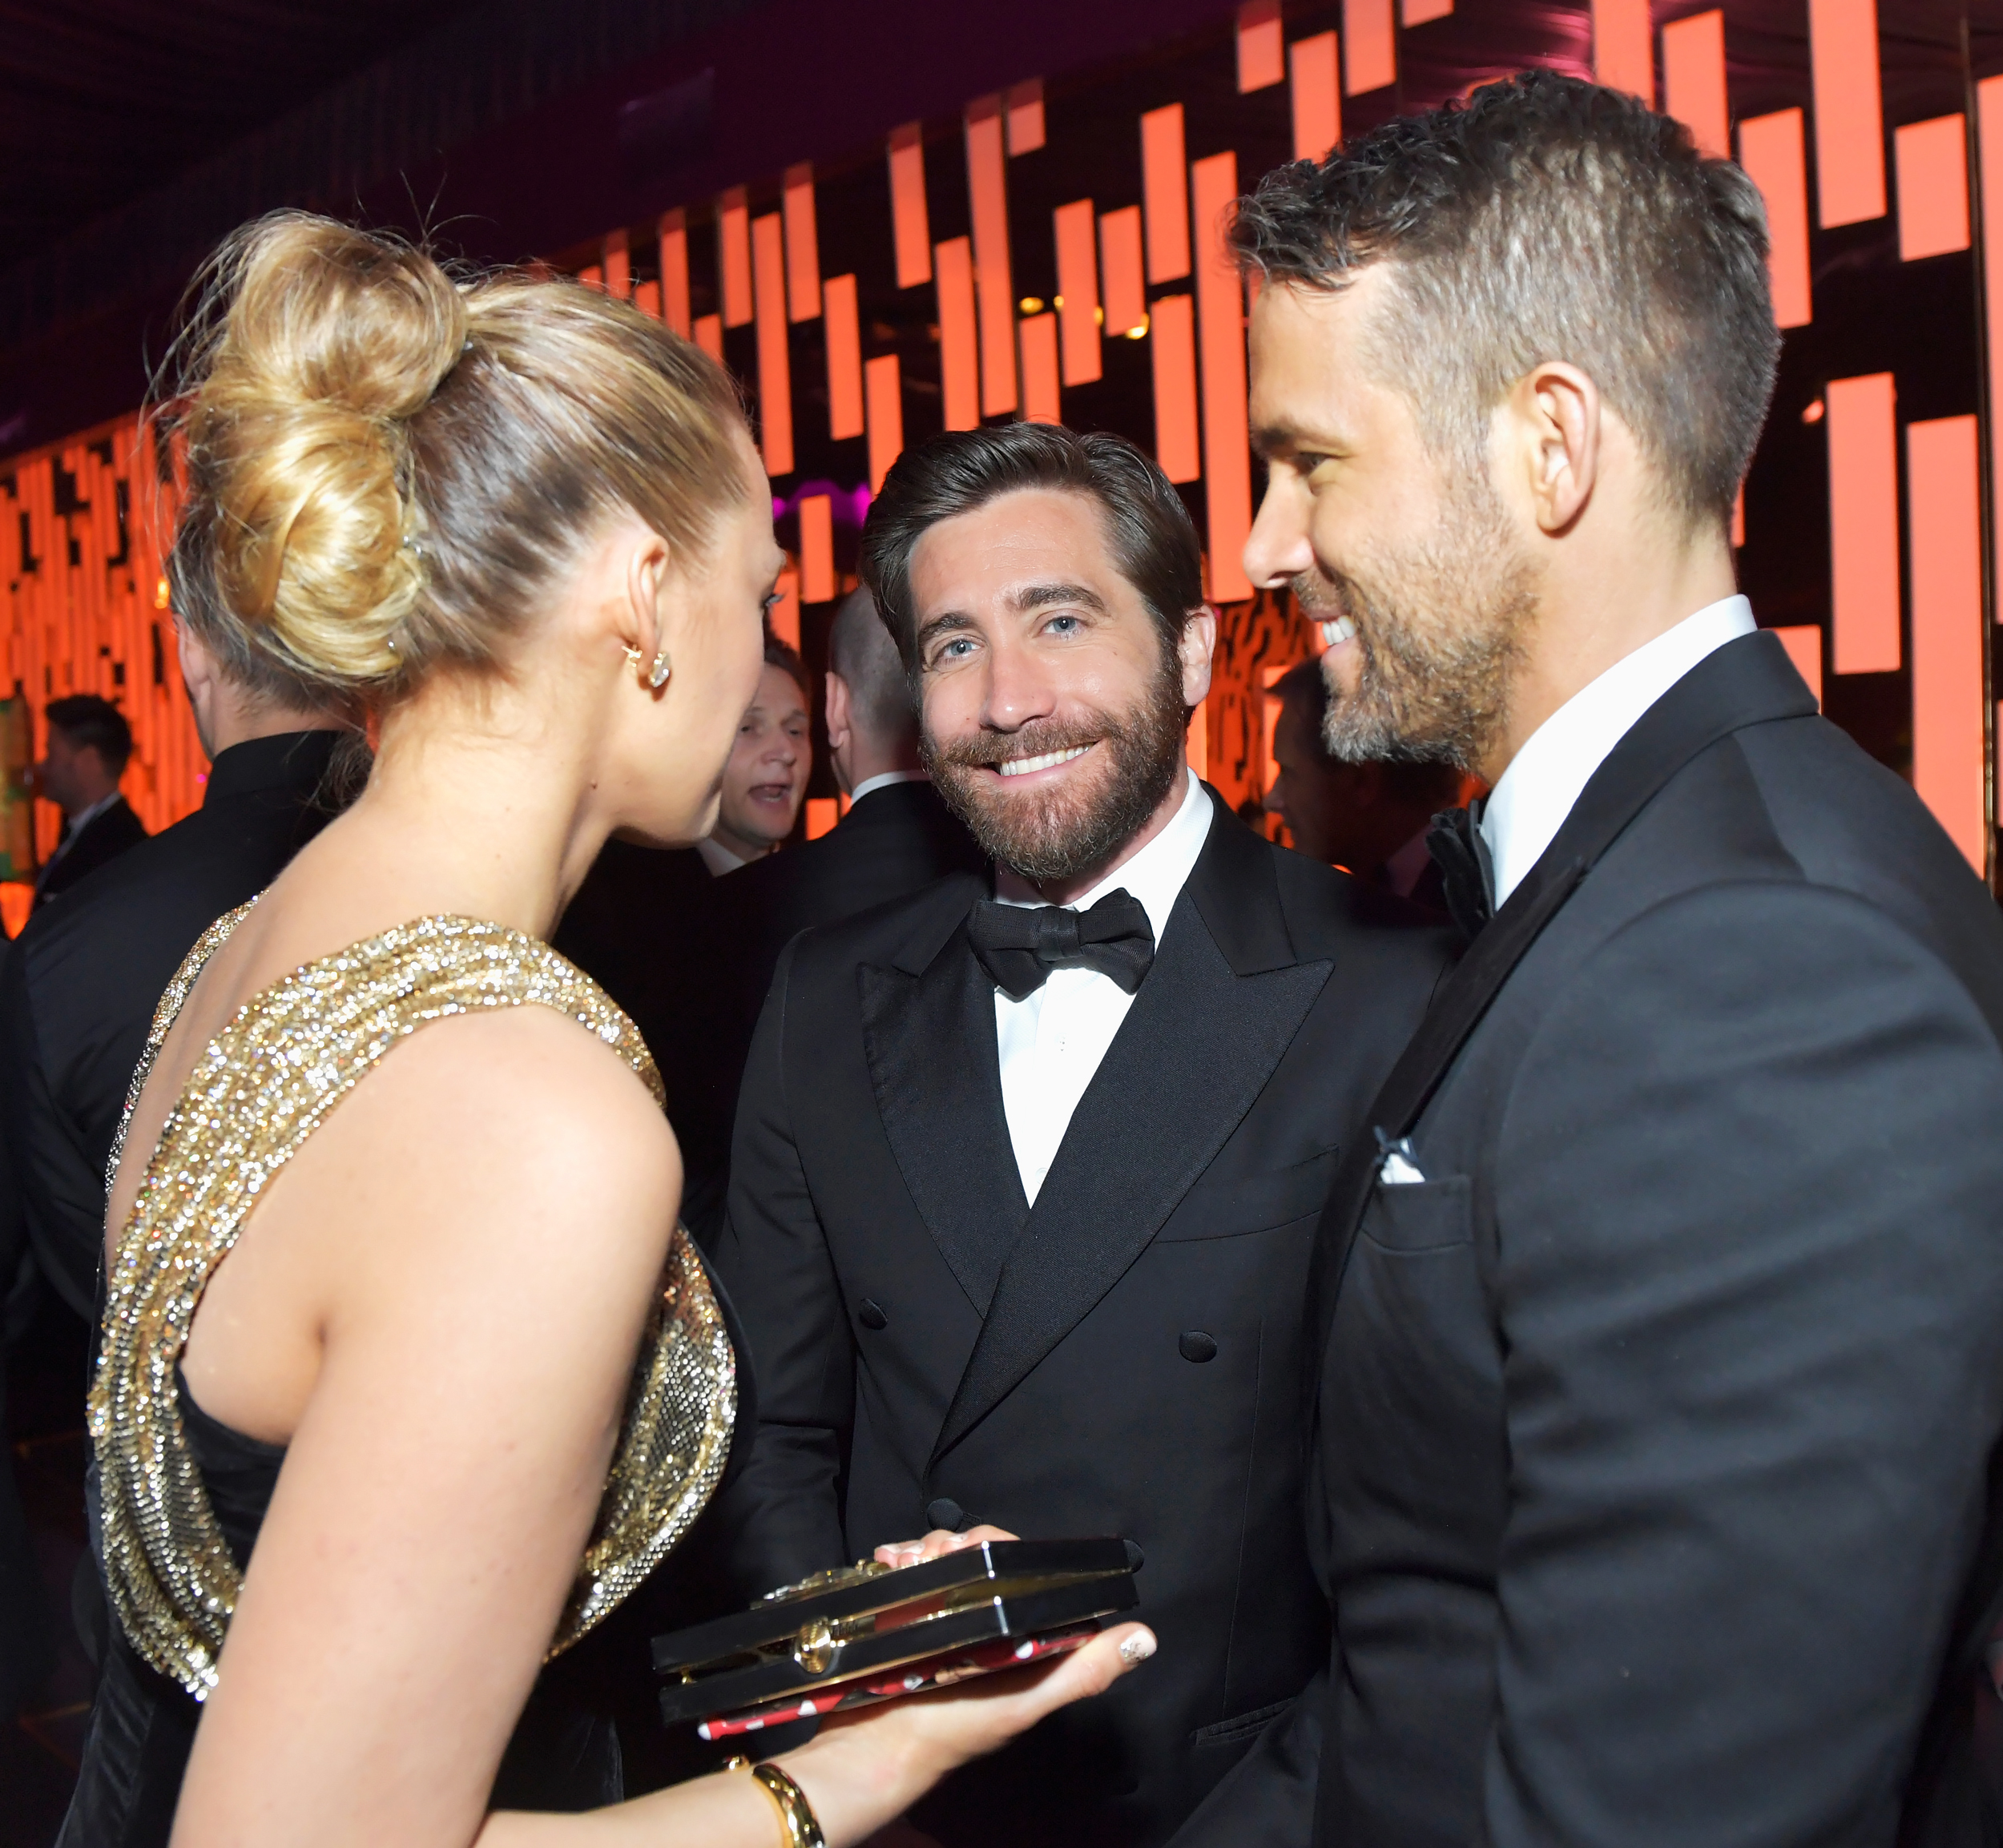 <p>Blake Lively, Jake Gyllenhaal, and Ryan Reynolds - Golden Globes 2017 - EMBED</p>